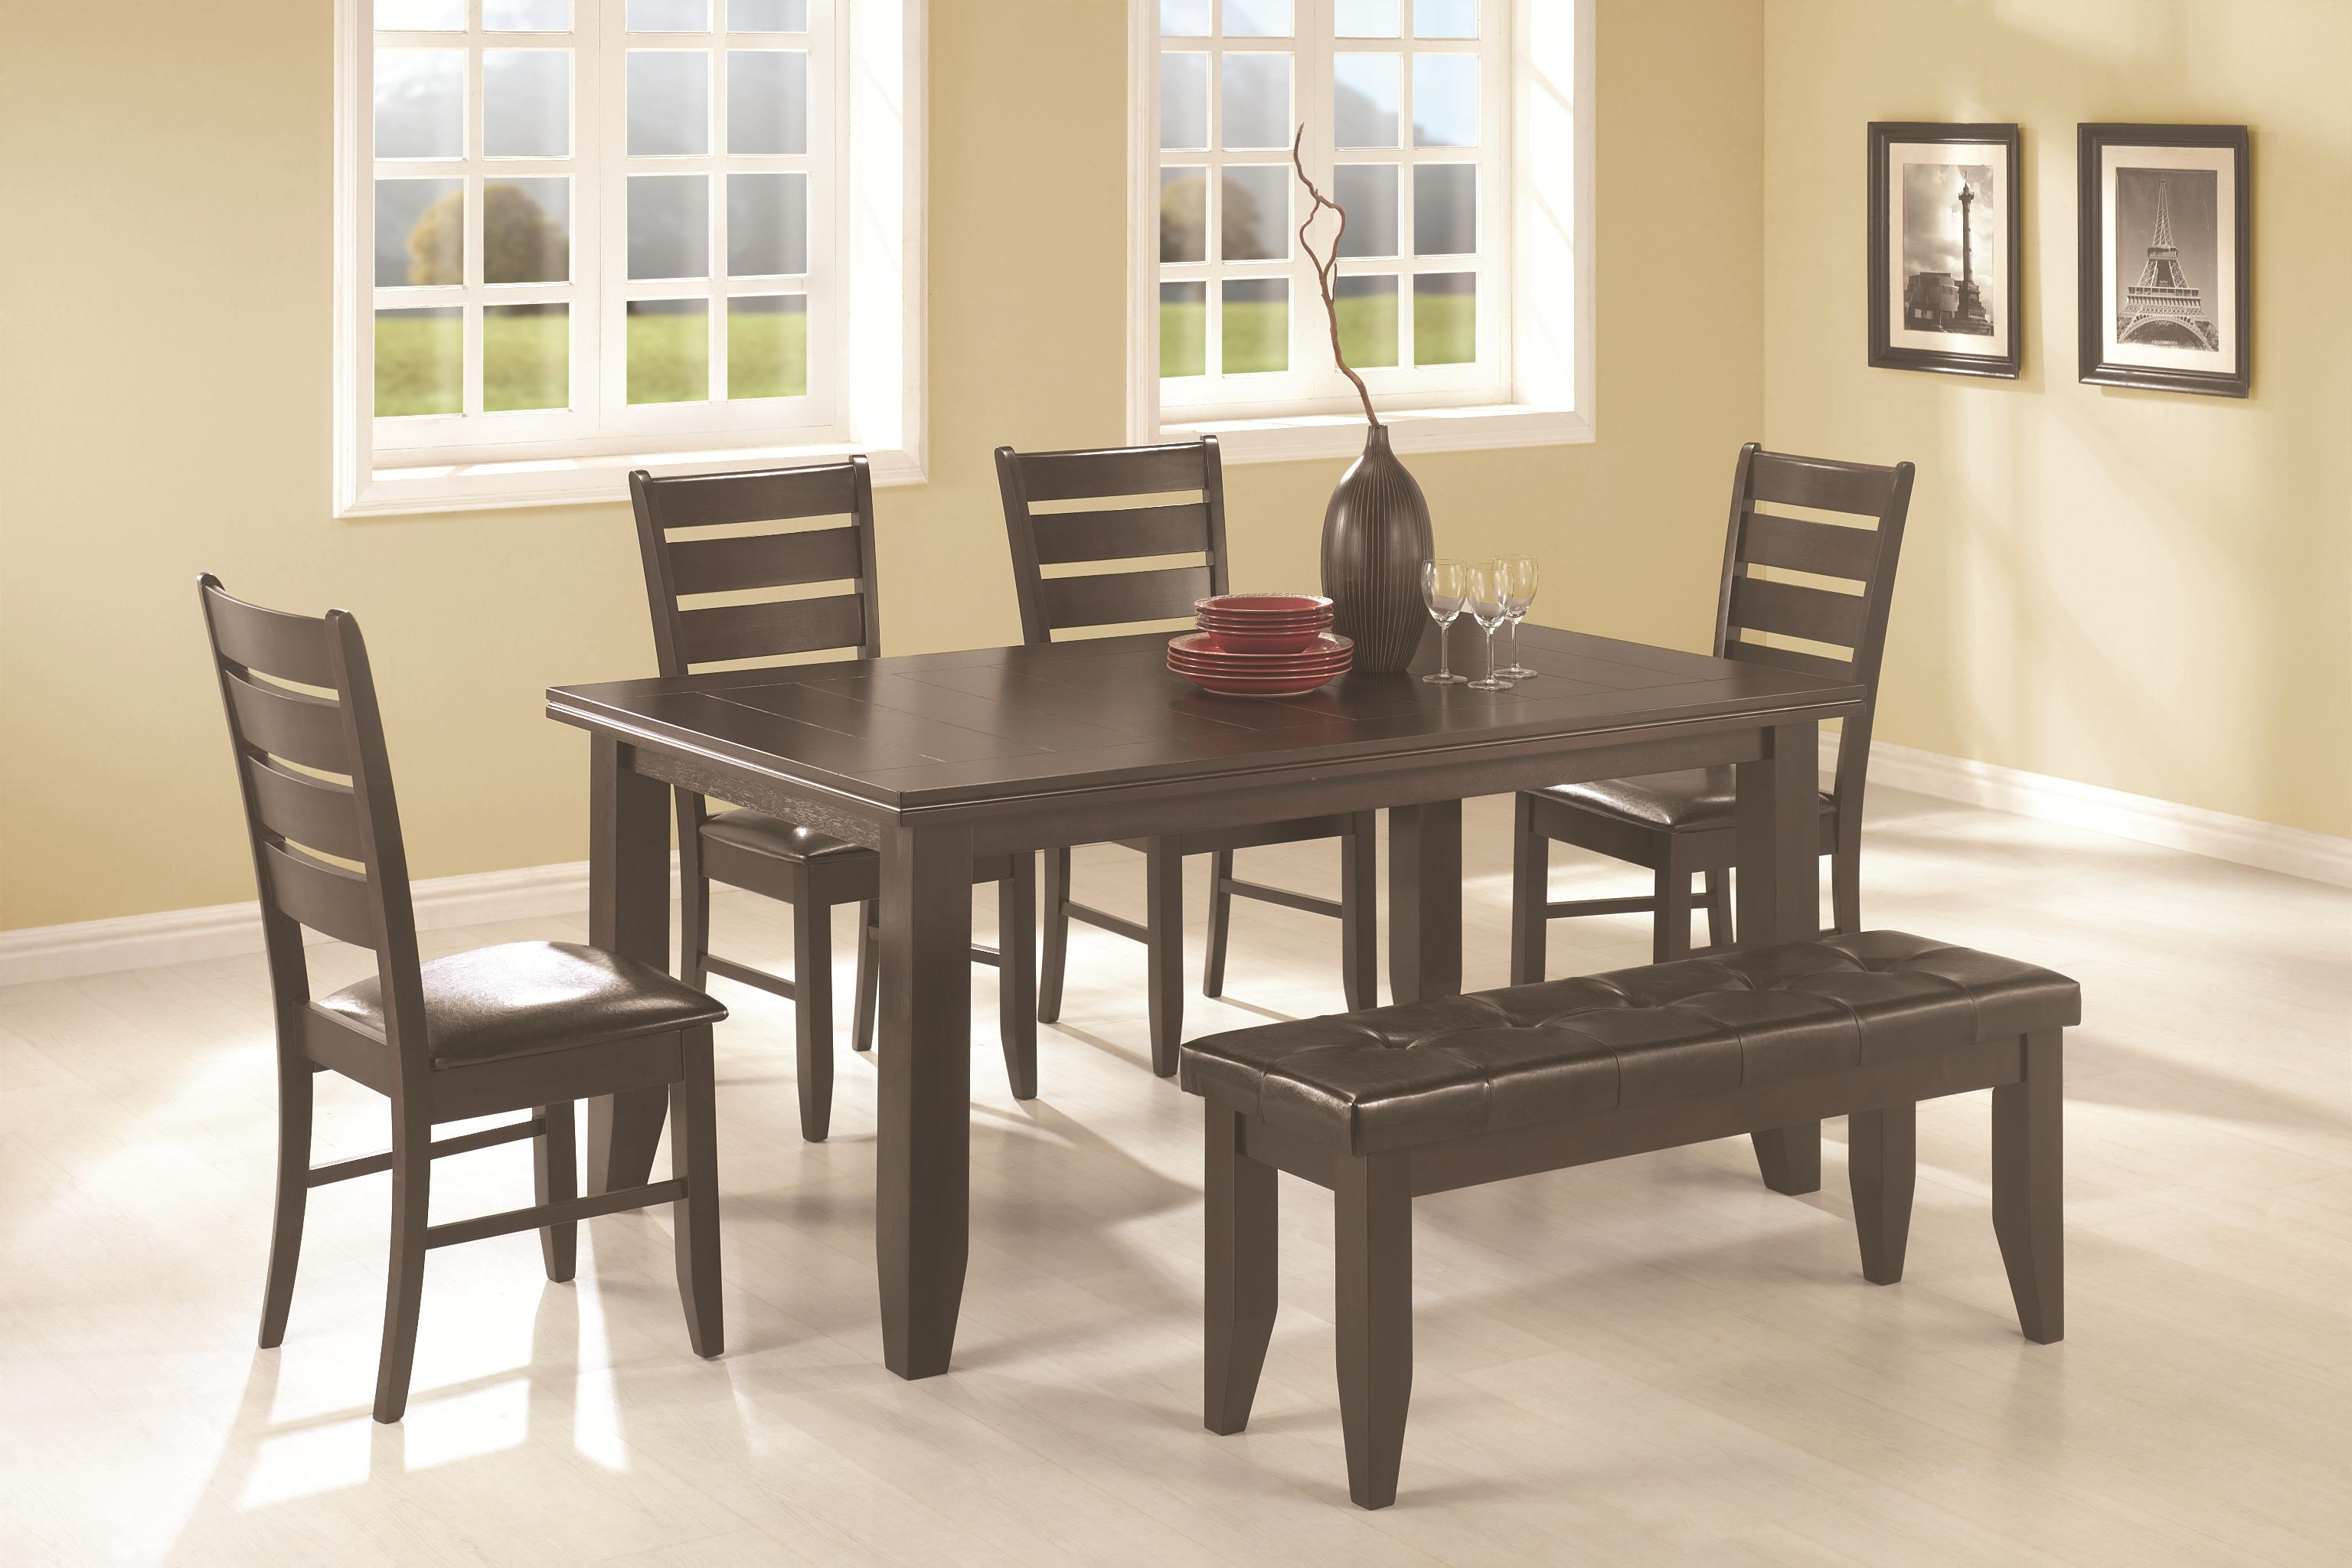 Dalila 6 Piece Dining Set by Coaster at Northeast Factory Direct